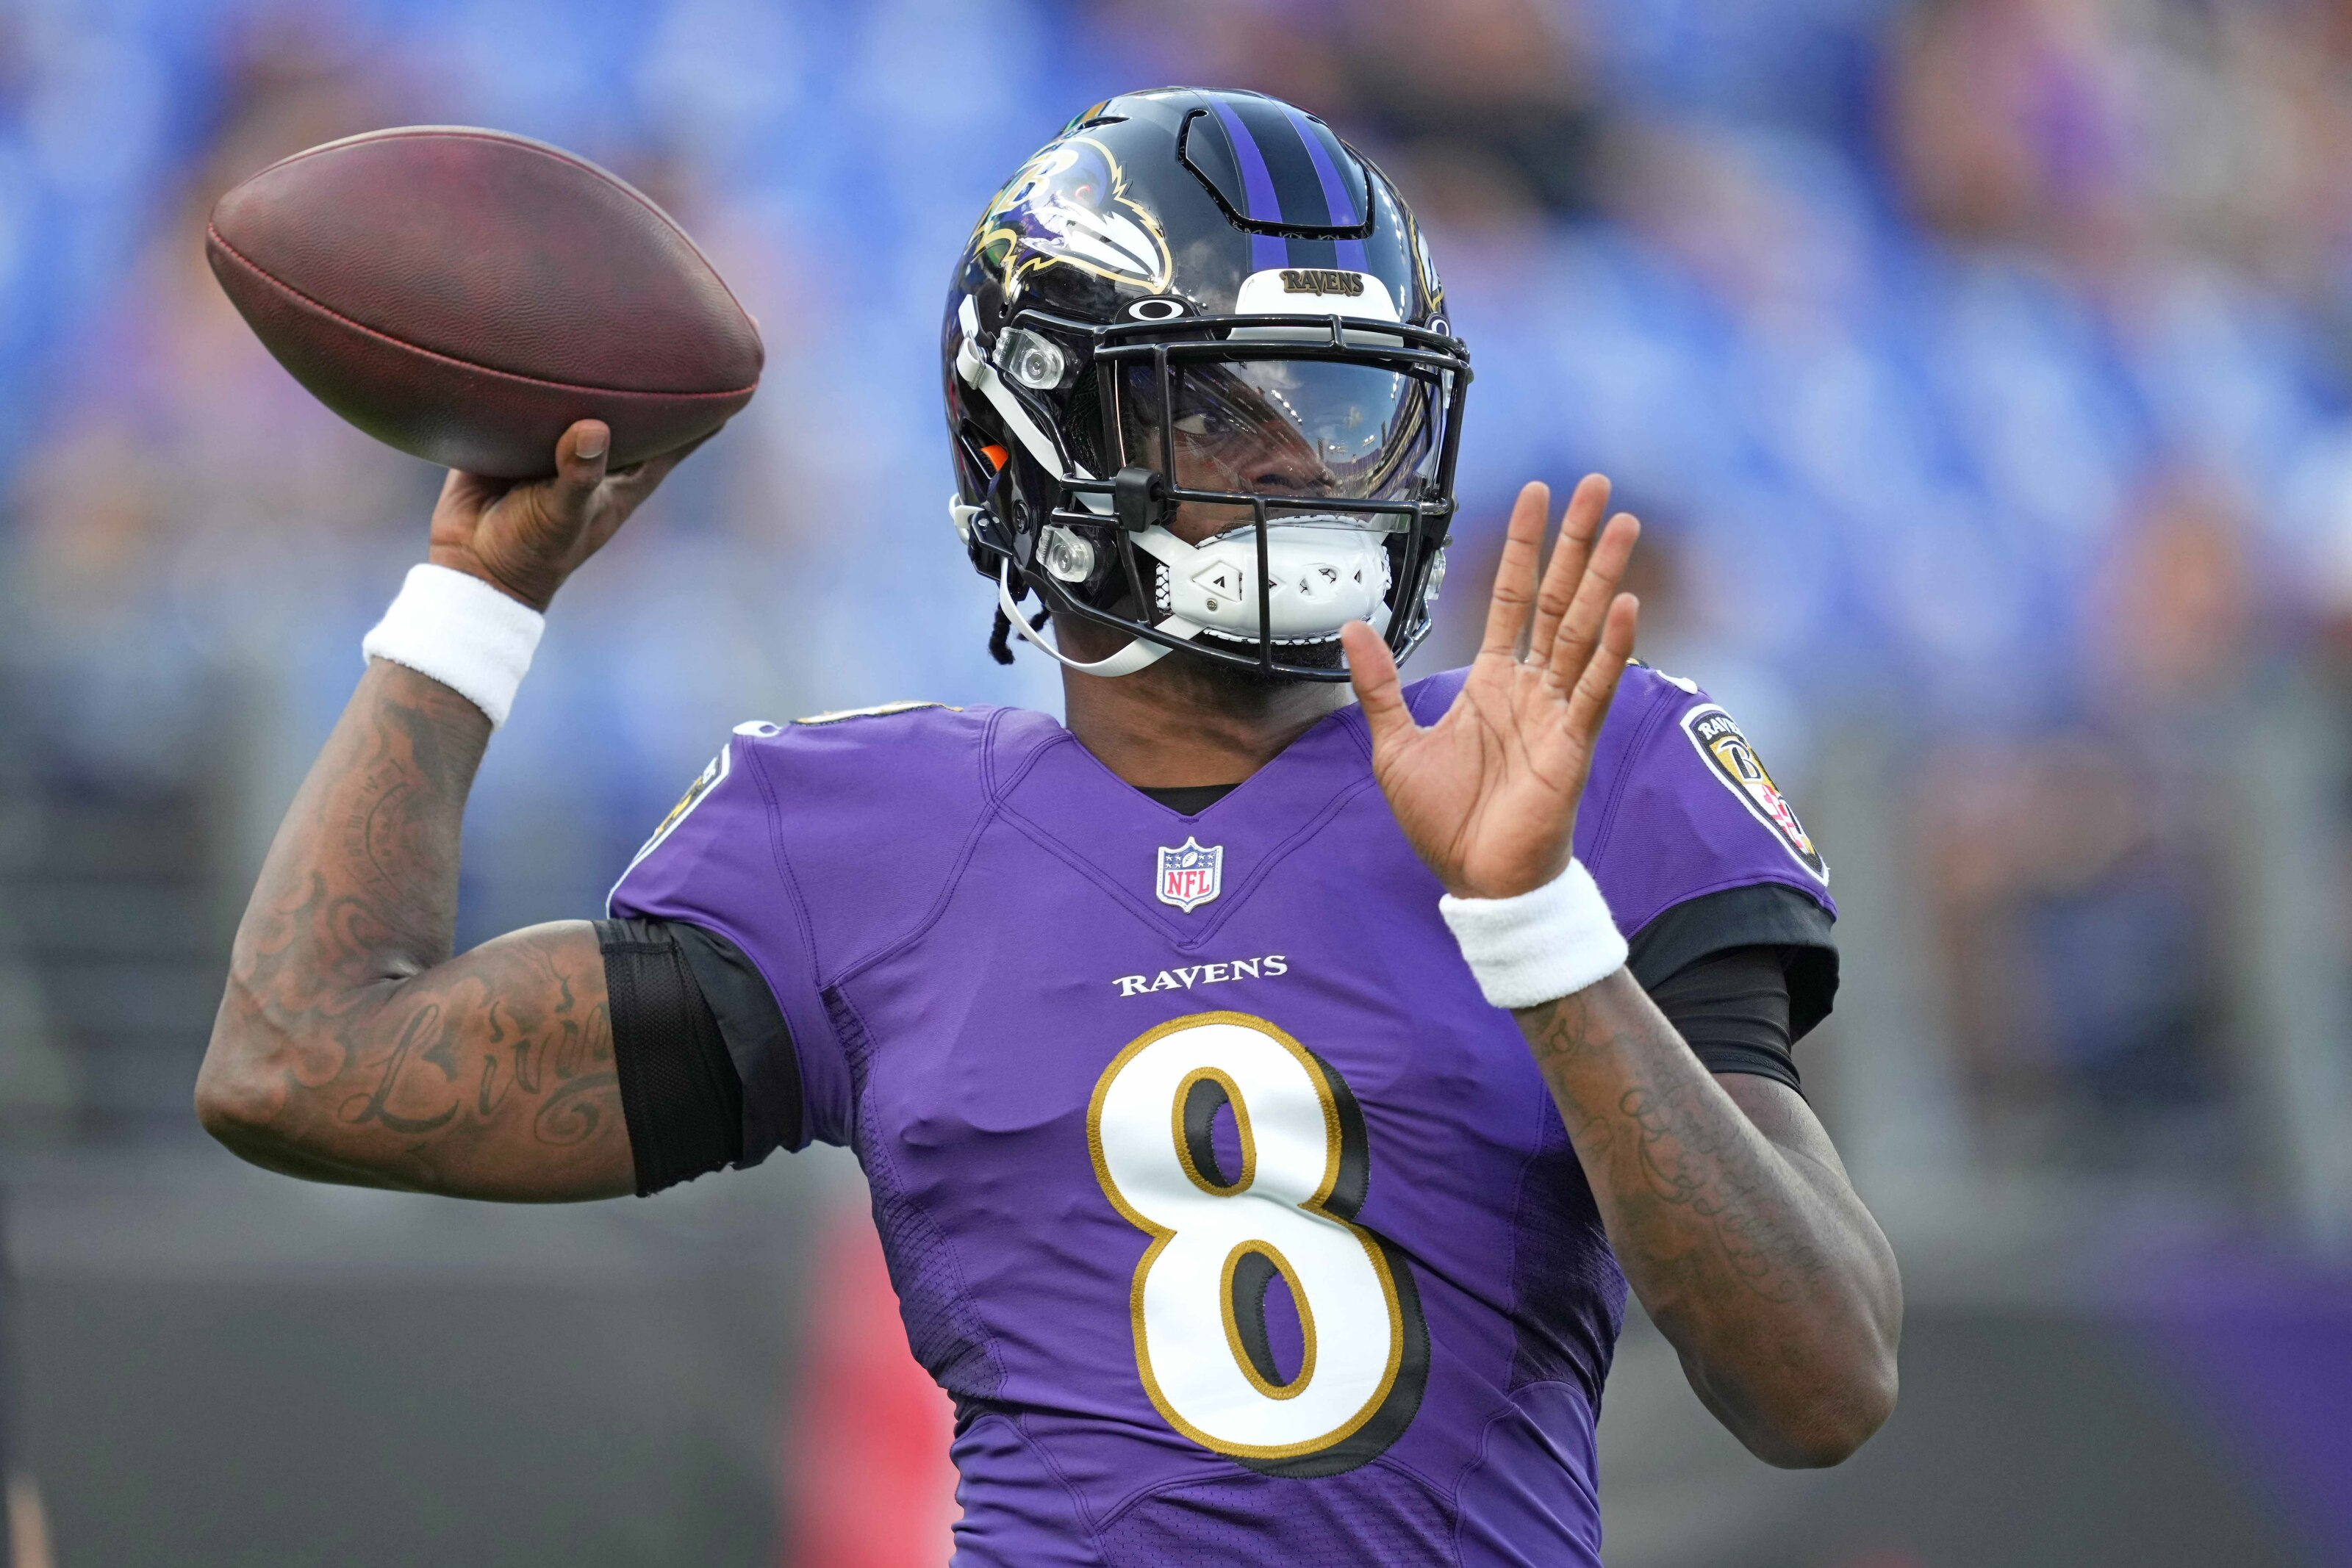 Ravens: There's no reason for Lamar Jackson to play this Saturday